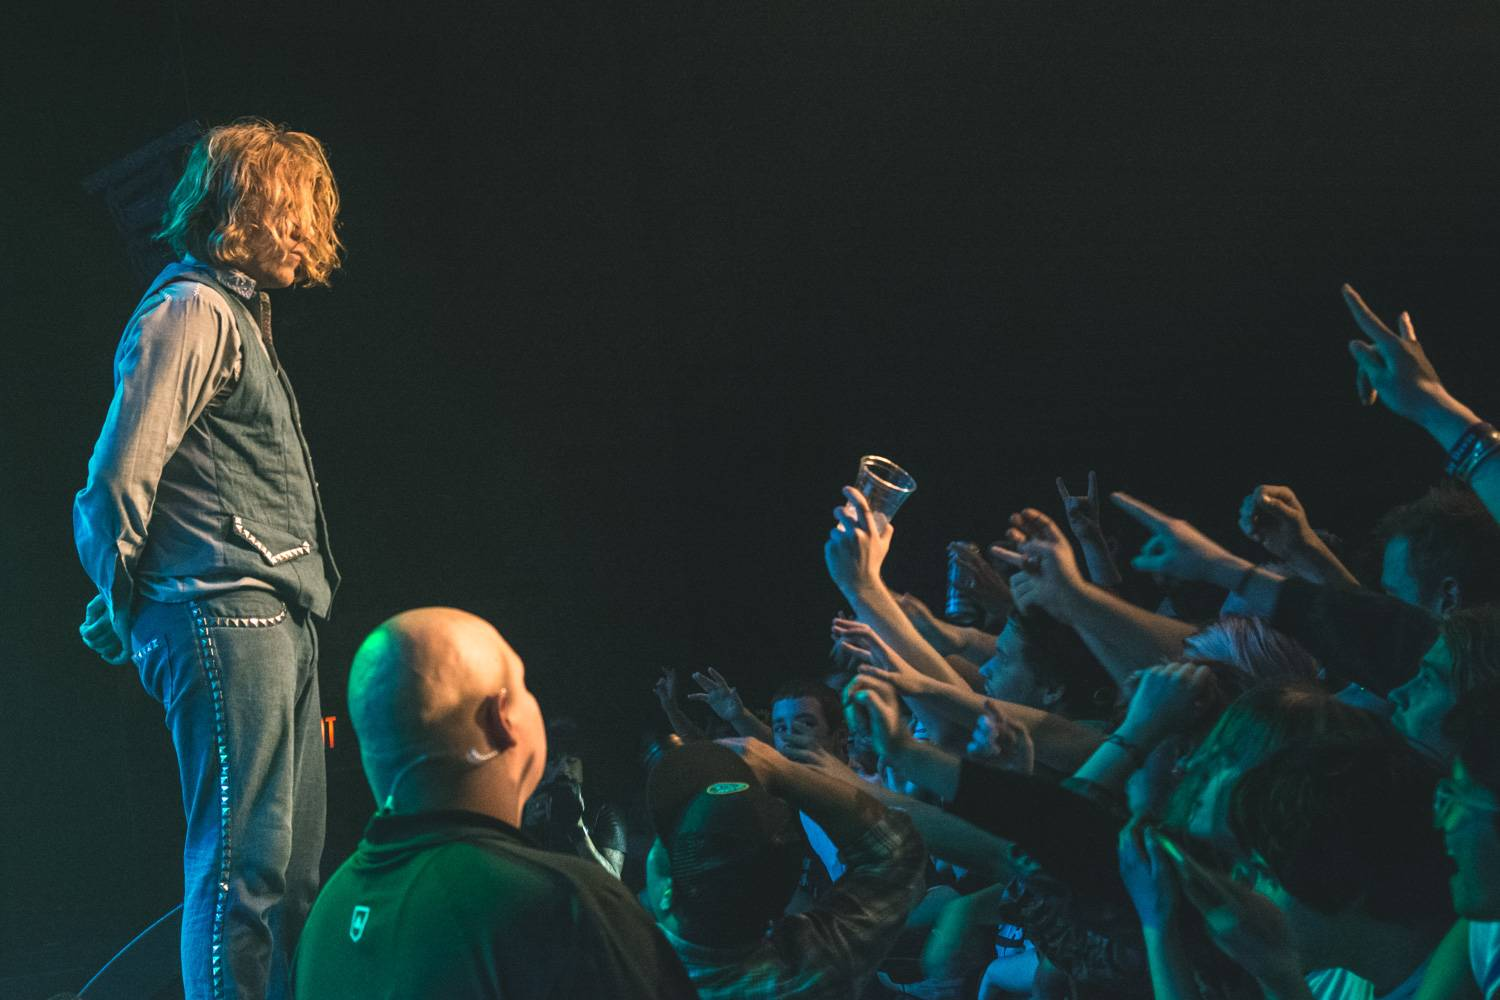 Ty Segall at the Vogue Theatre, Vancouver, Jan. 22 2016. Pavel Boiko photo.